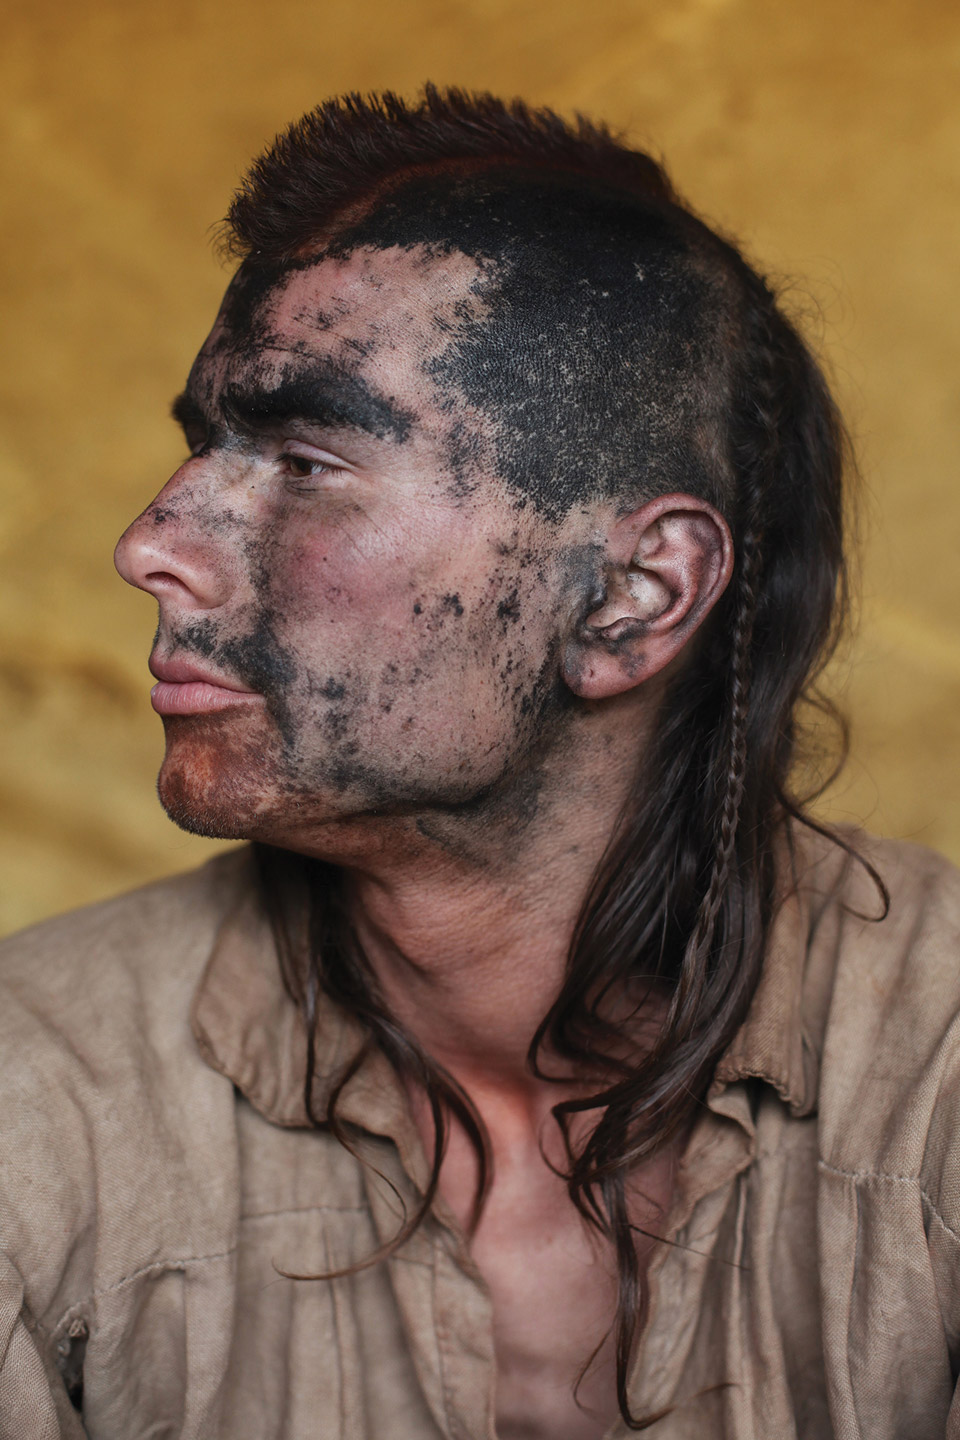 Man dressed as Native American with mohawk and braid.